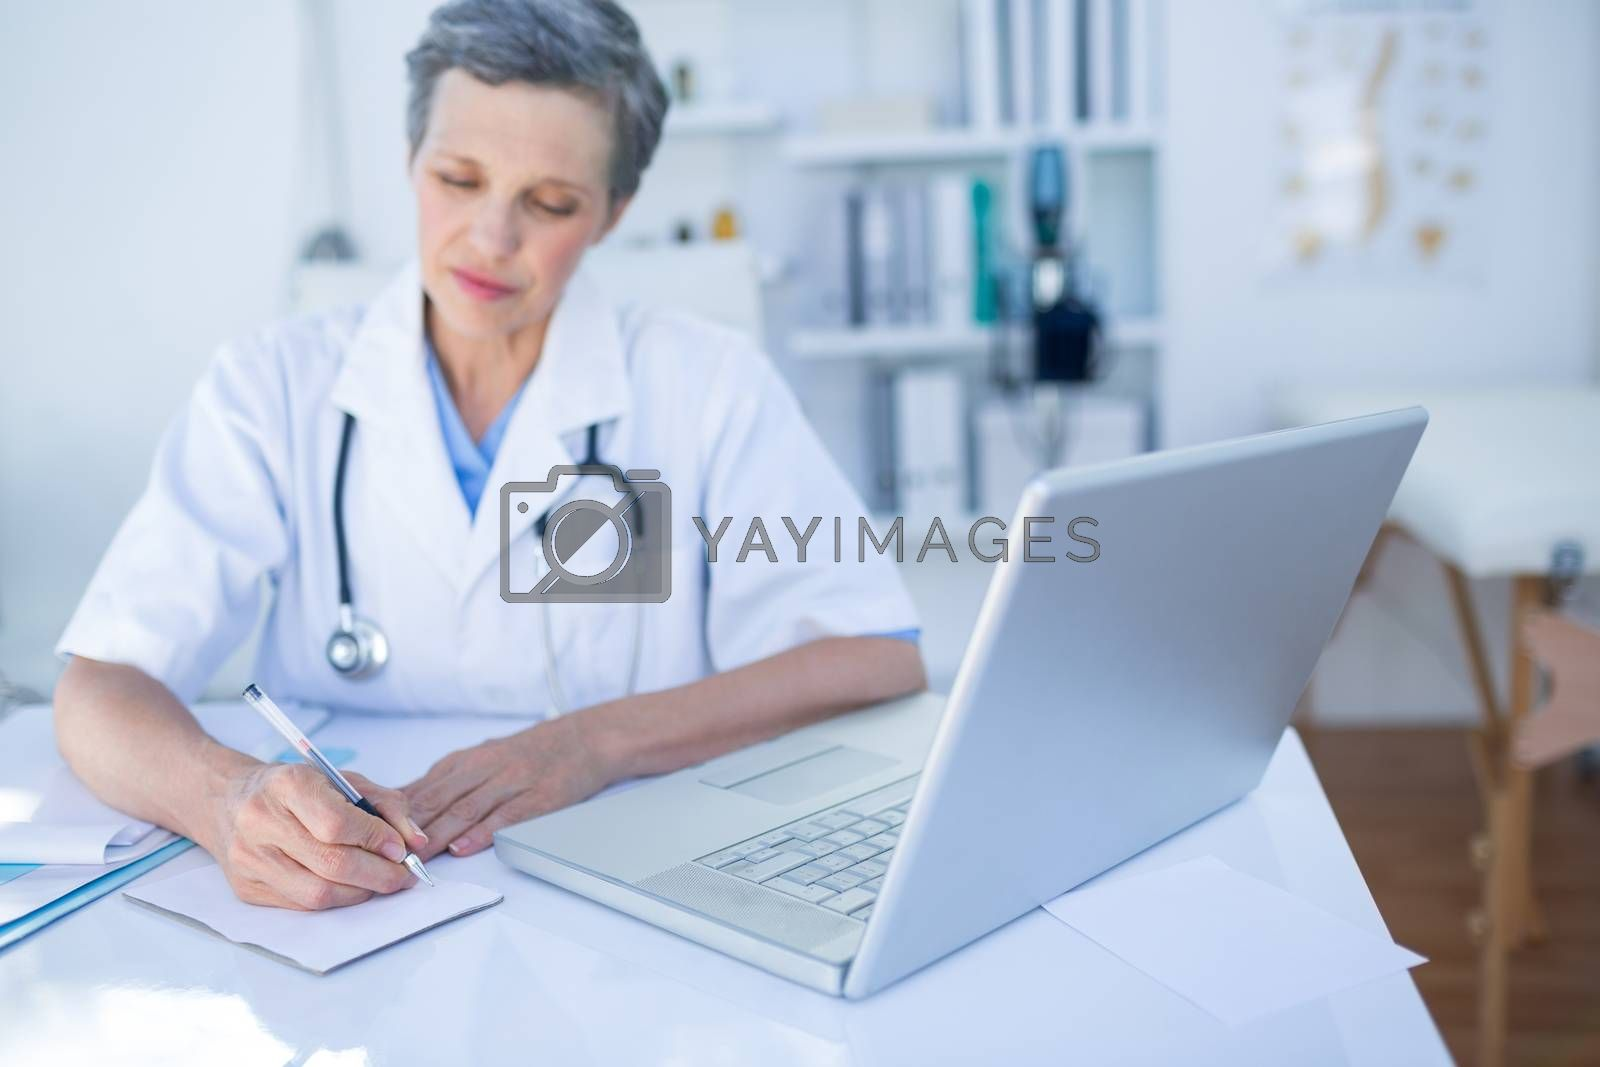 Royalty free image of Female doctor writing on paper  by Wavebreakmedia